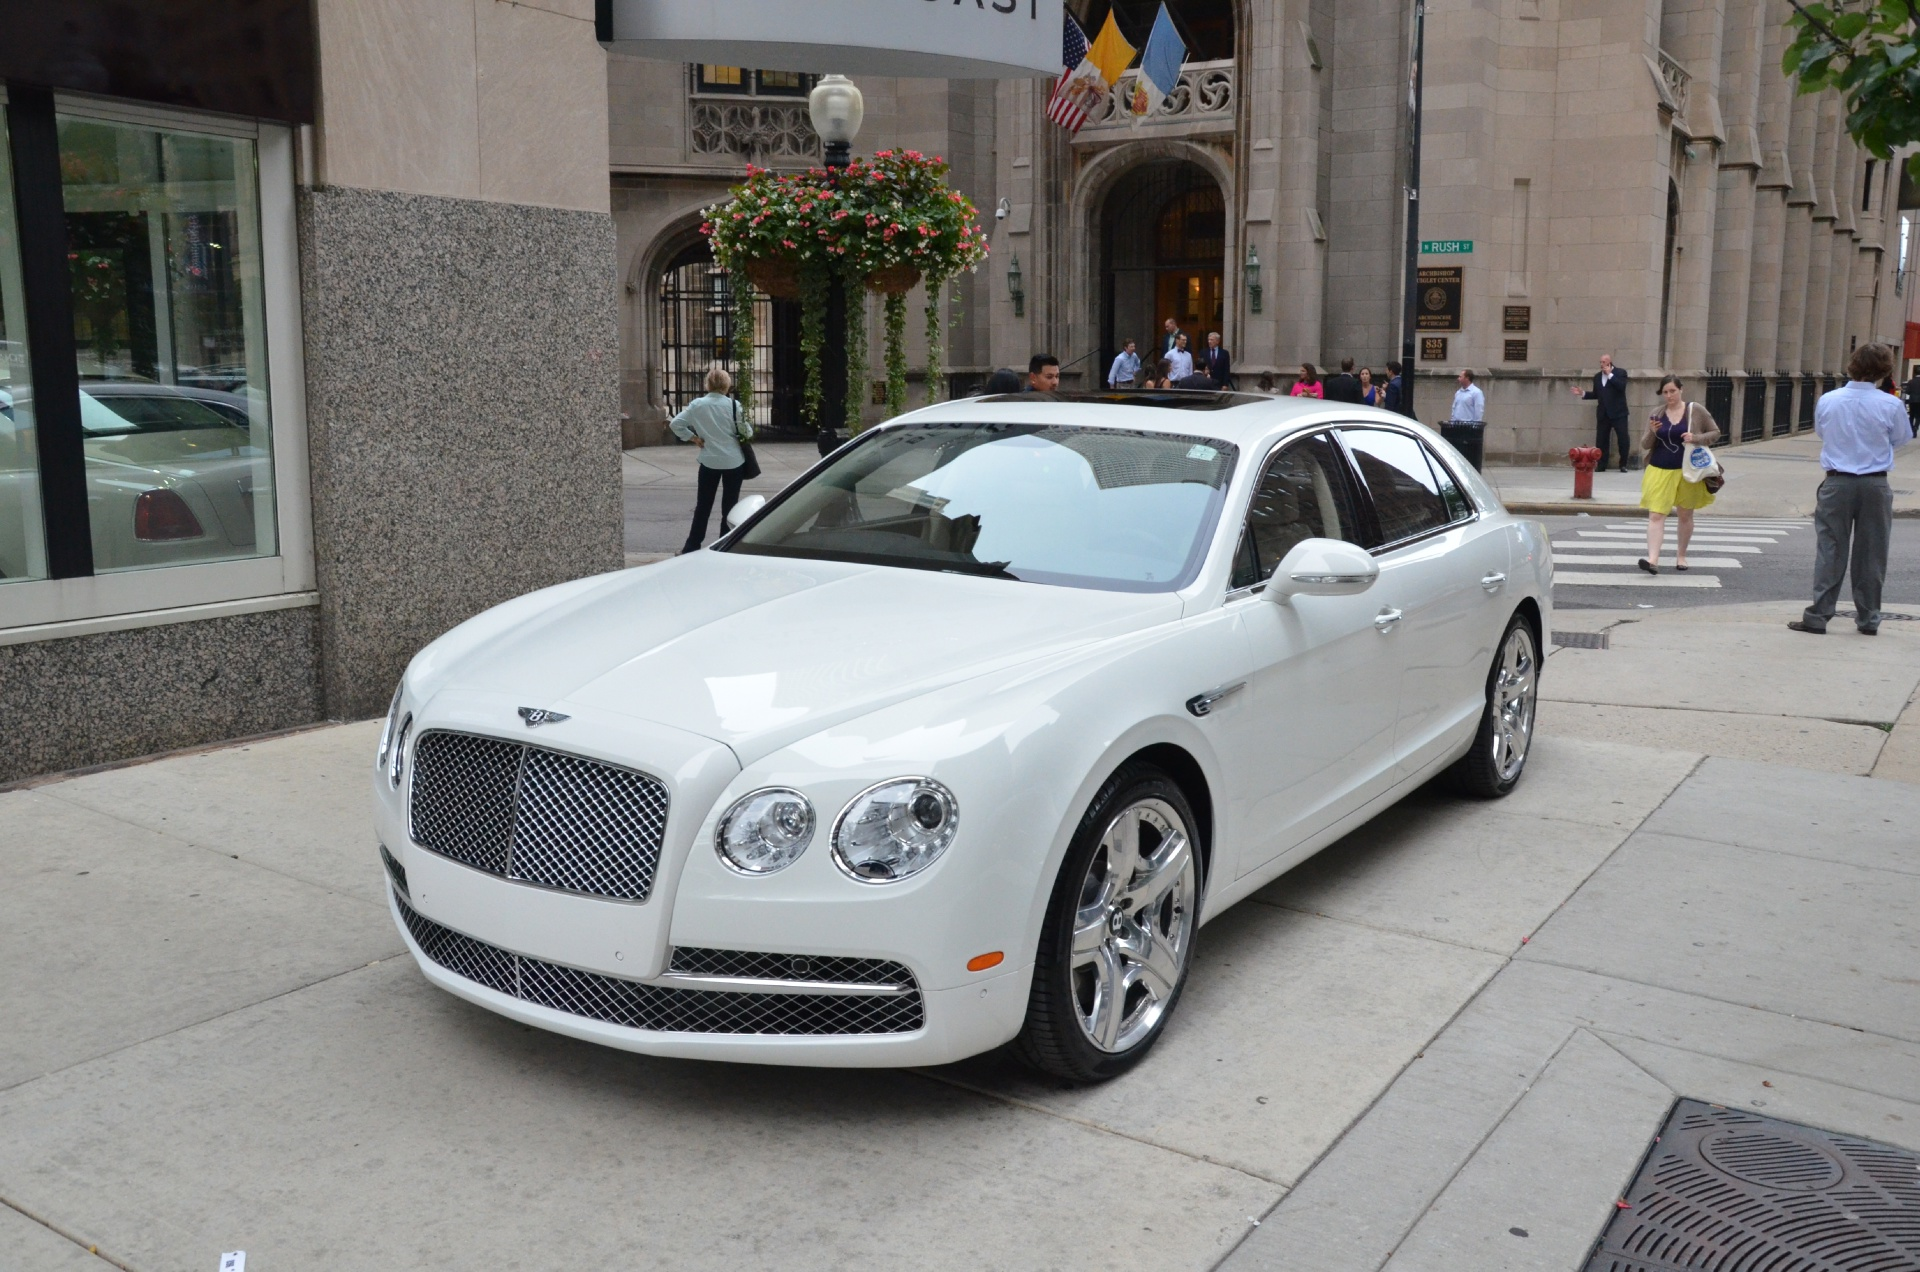 2014 Bentley Flying Spur Stock # B492-S for sale near Chicago, IL ...